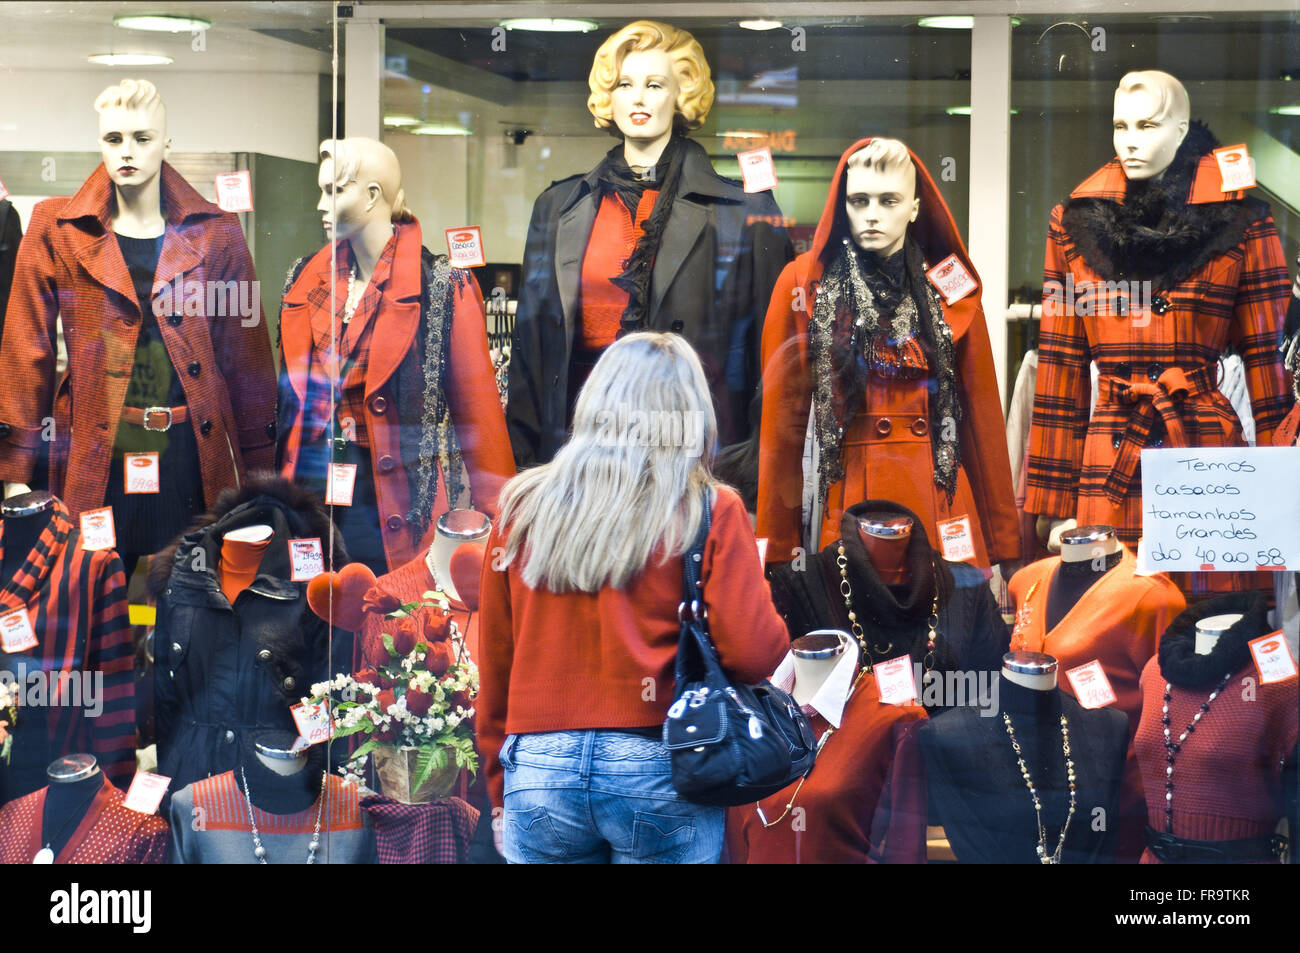 Consumer observes coats for winter showcase store installed in the city center - Stock Image